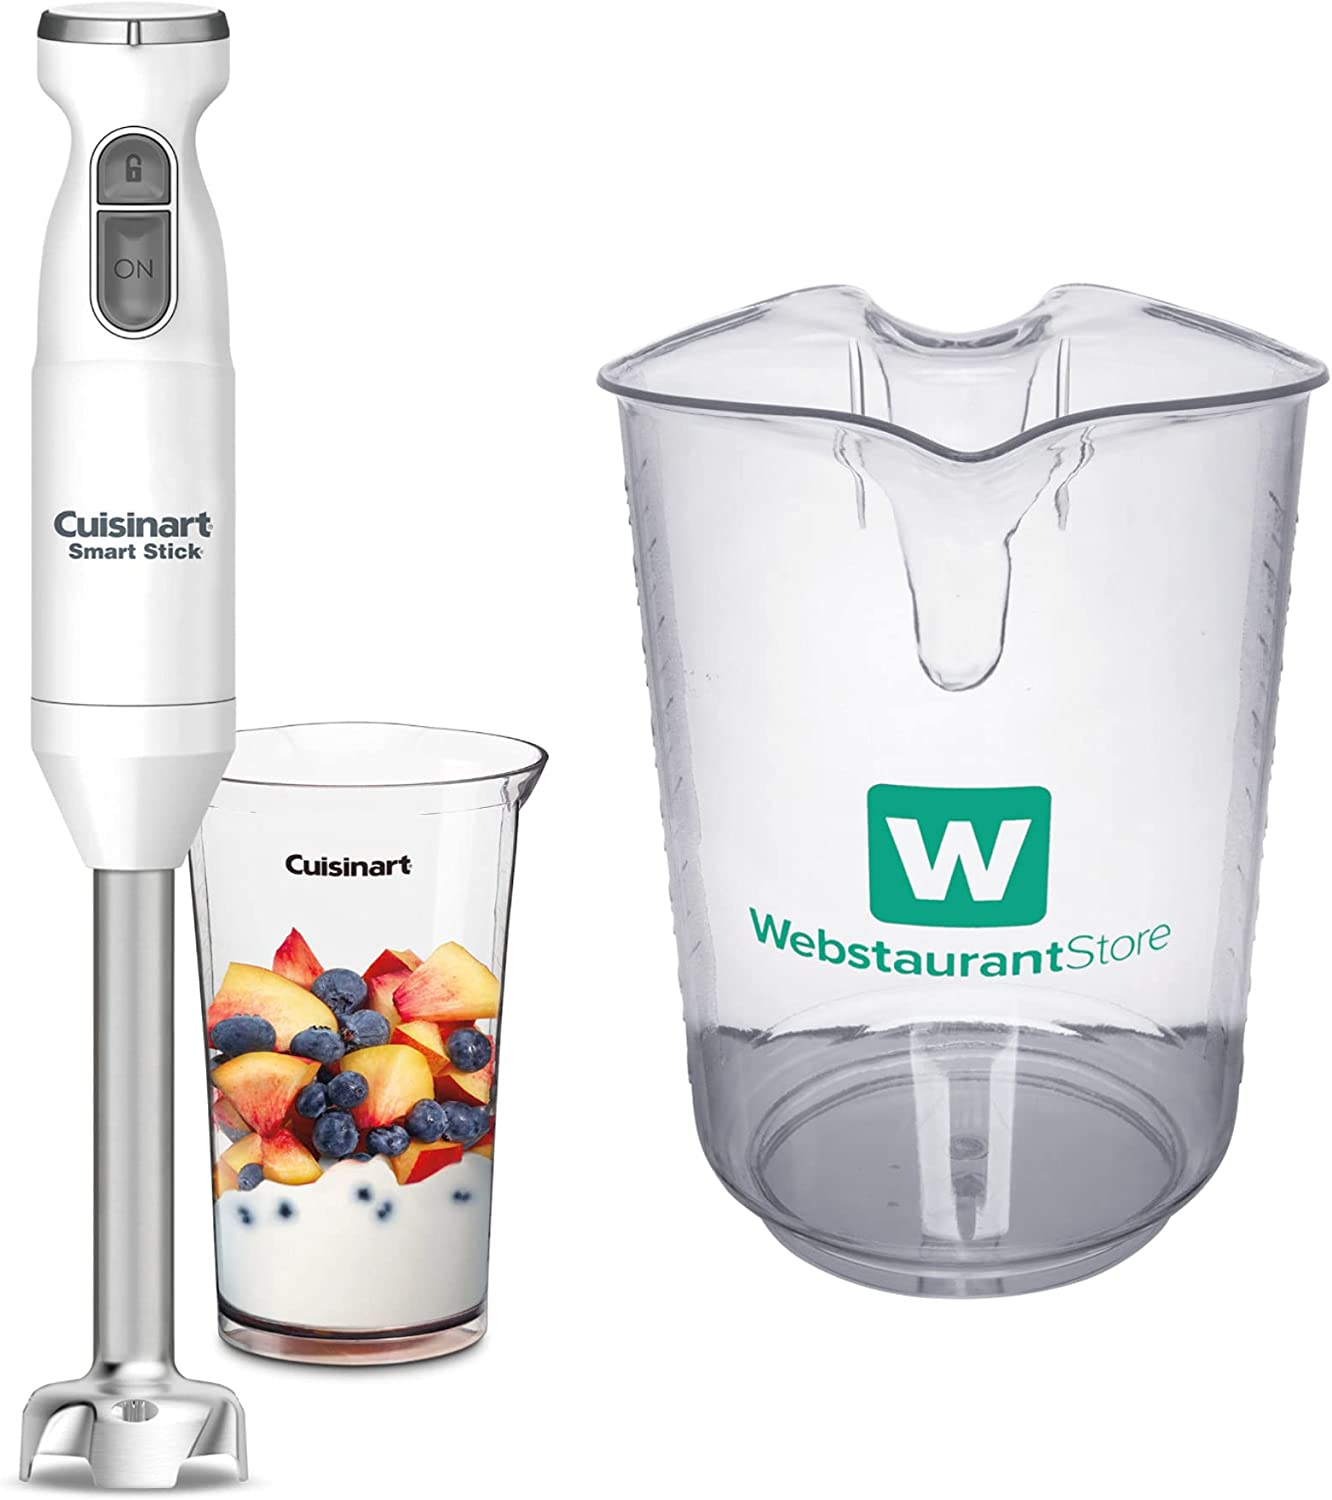 Cuisinart CSB-175 Smart Stick Hand 2-Speed Blender (White) with 4 Qt. (16 Cups) Clear Polycarbonate Measuring Cup Bundle (2 Items)